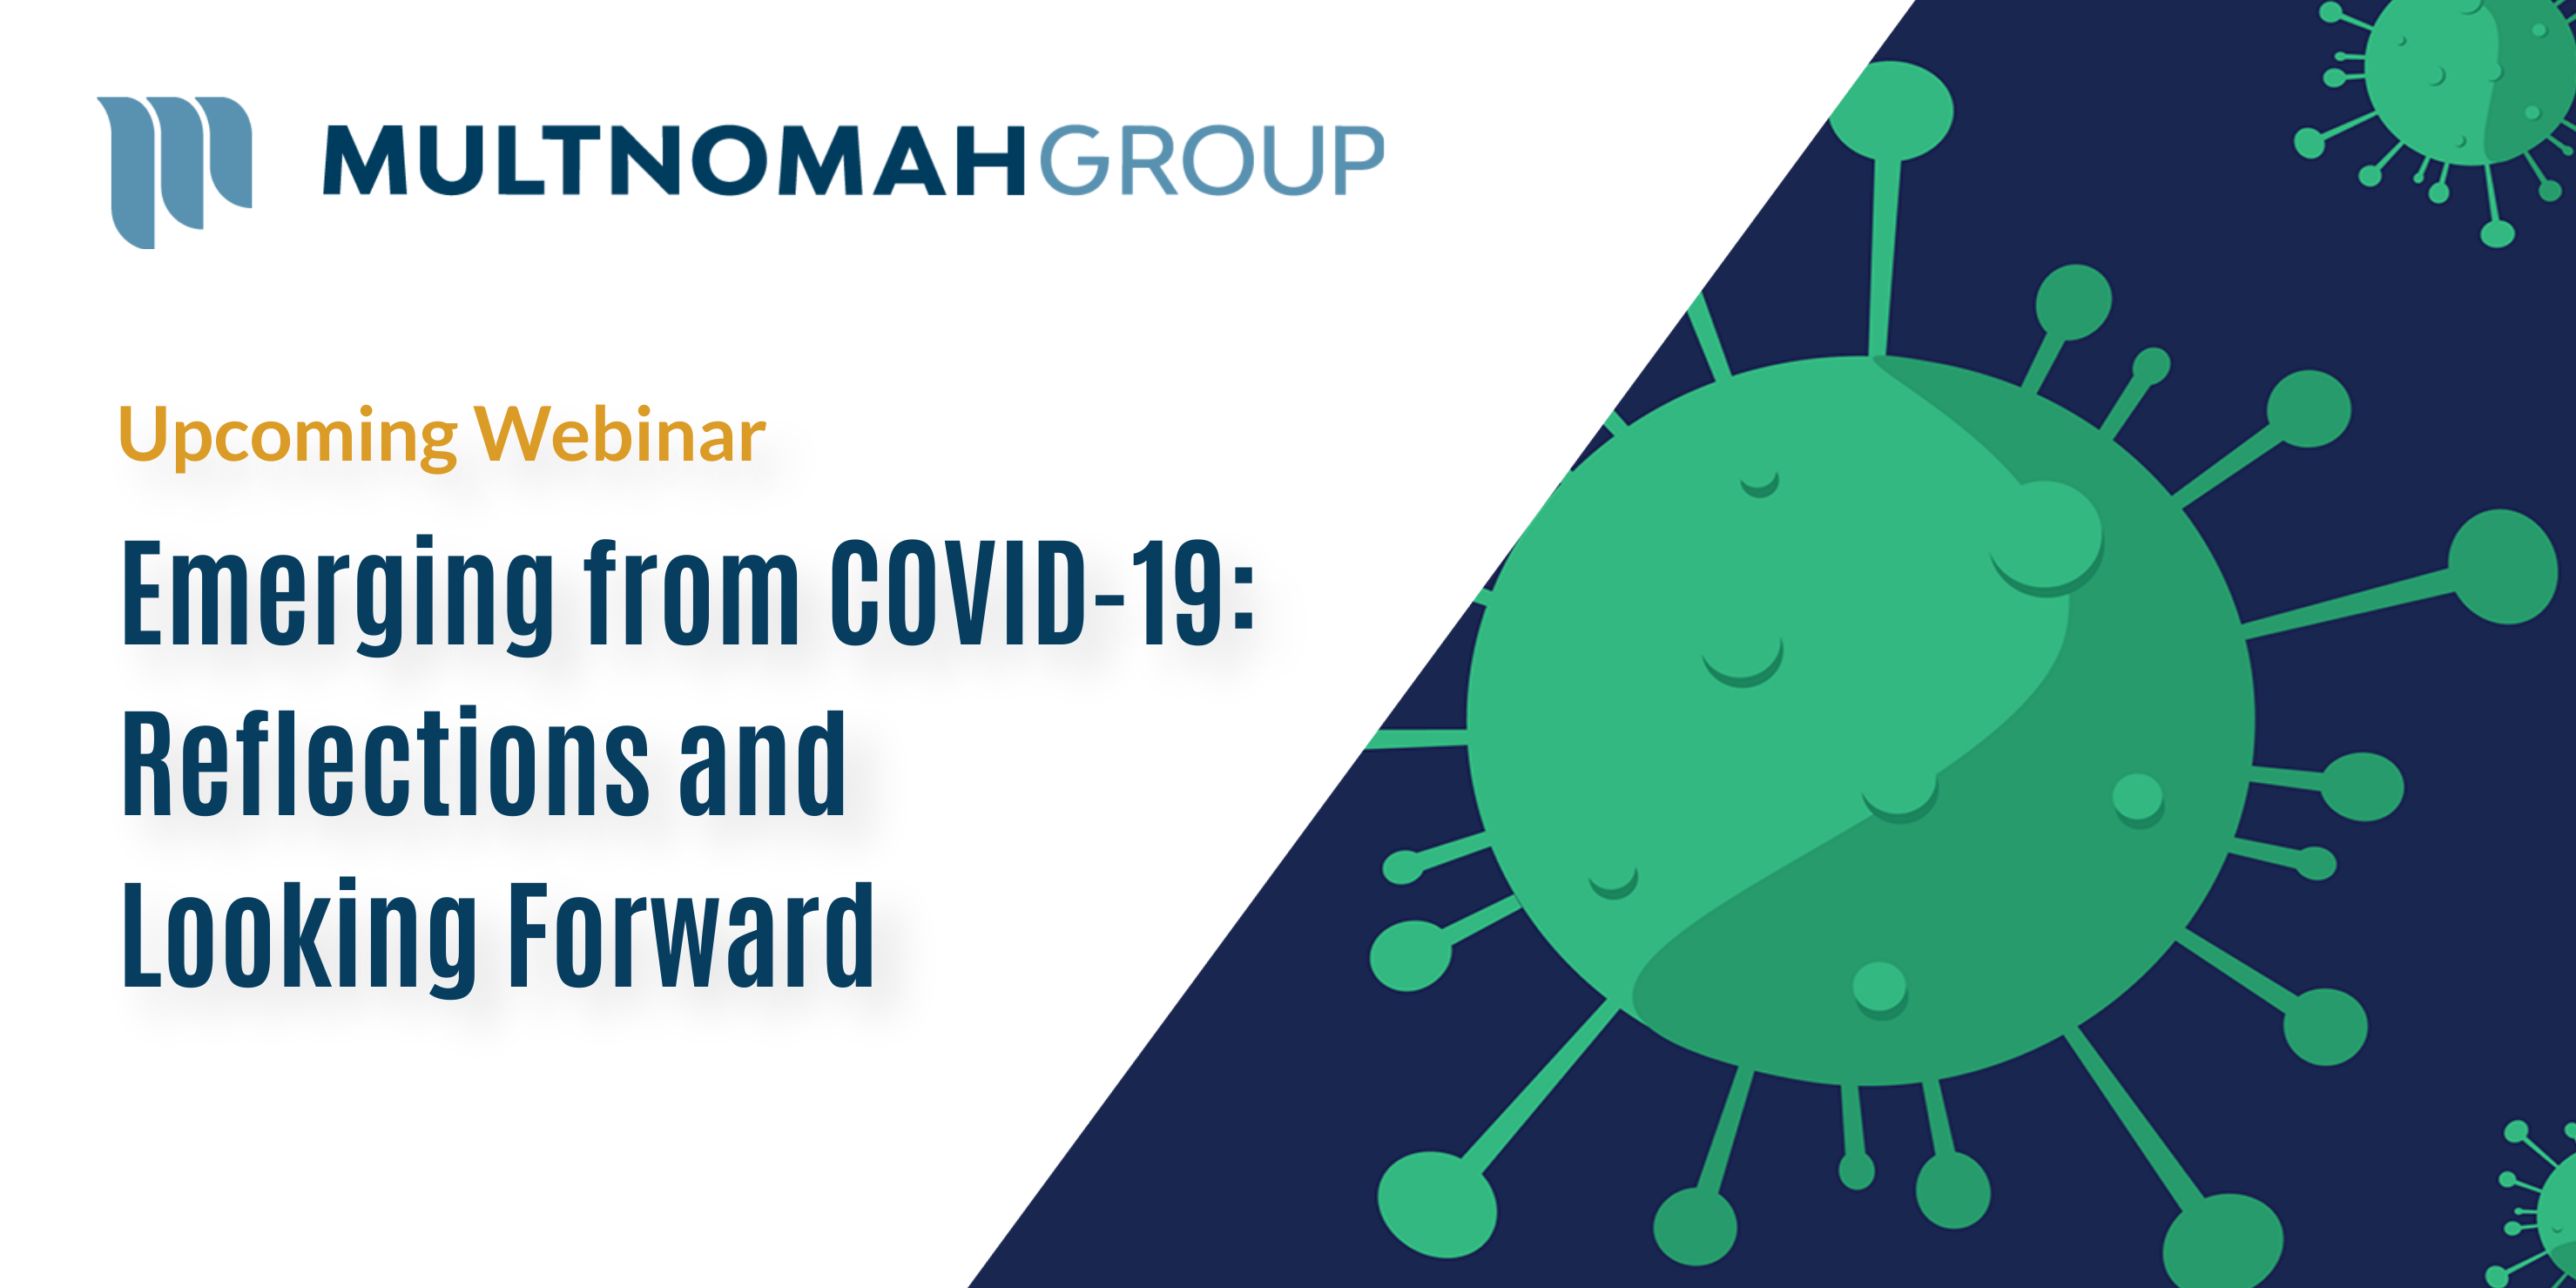 Webinar Recording: Emerging from COVID-19: Reflections and Looking Forward